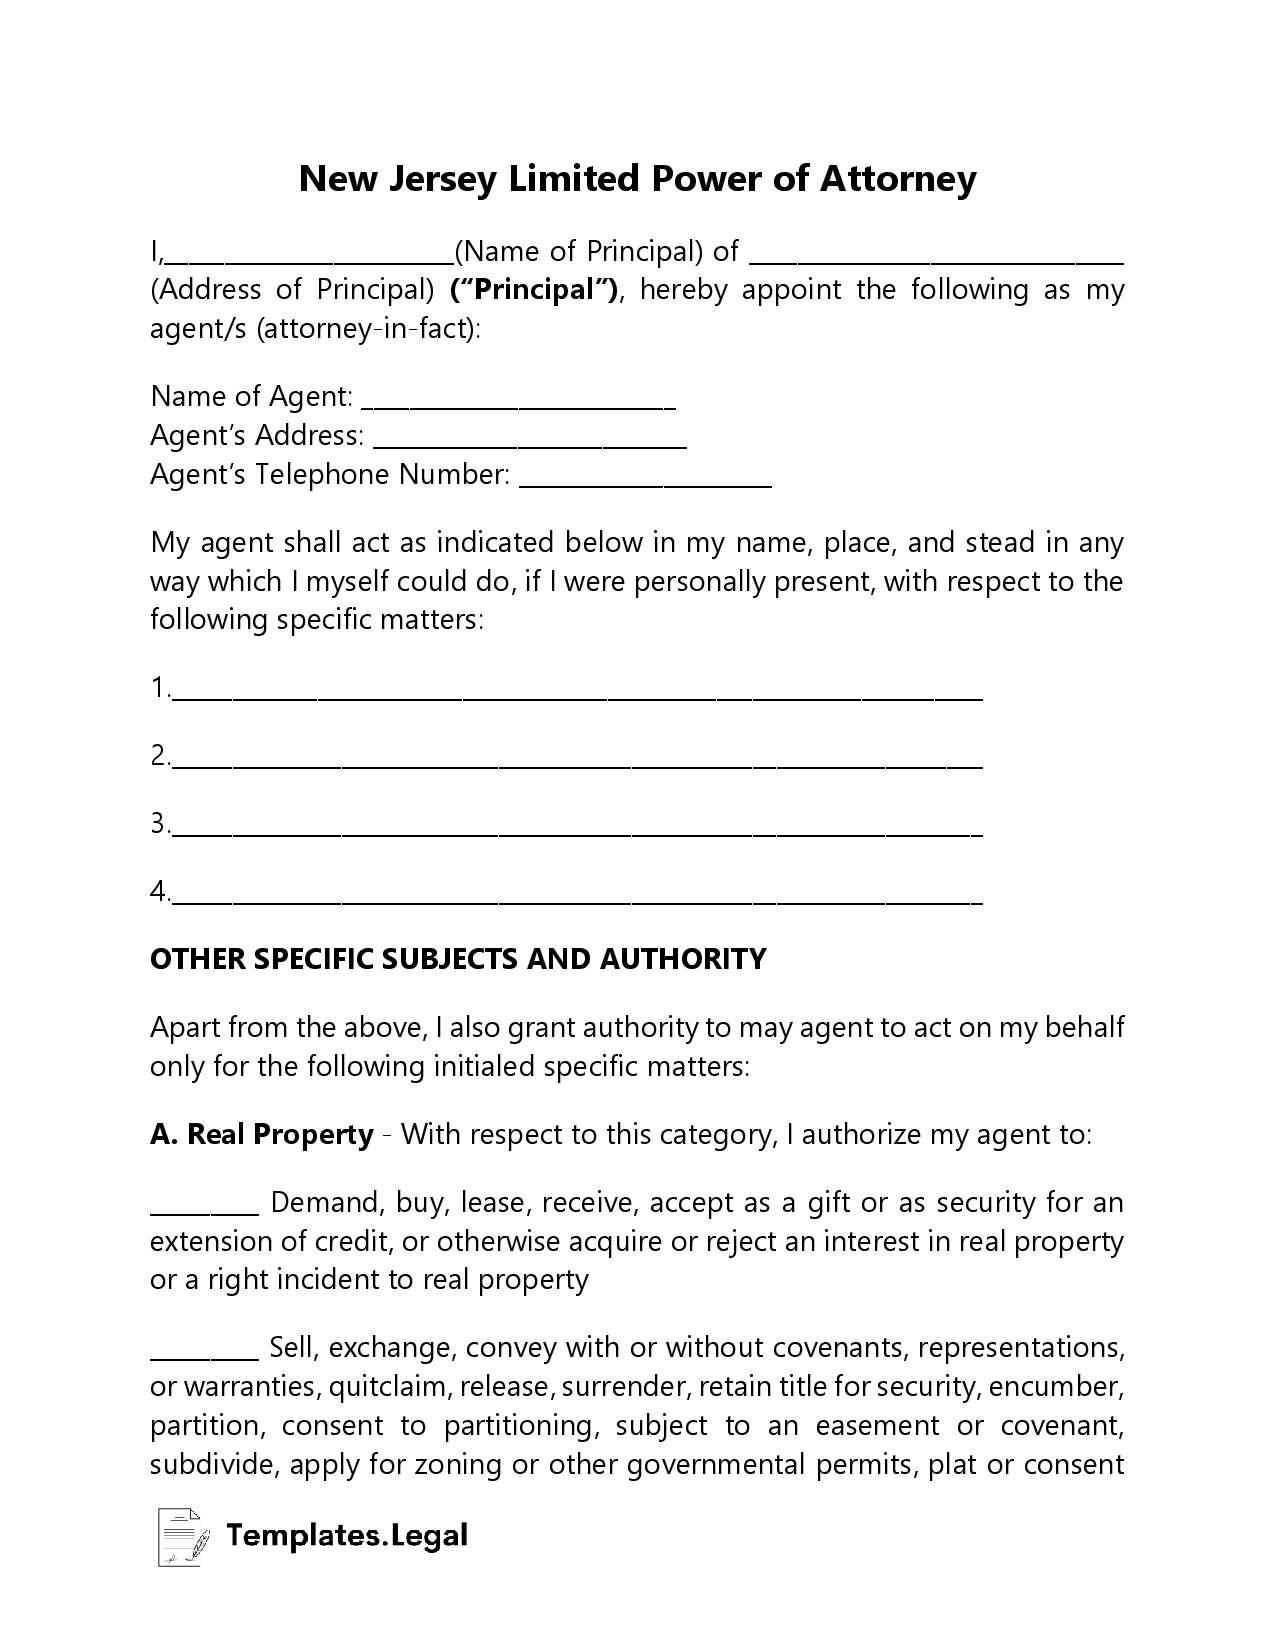 New Jersey Limited Power of Attorney - Templates.Legal